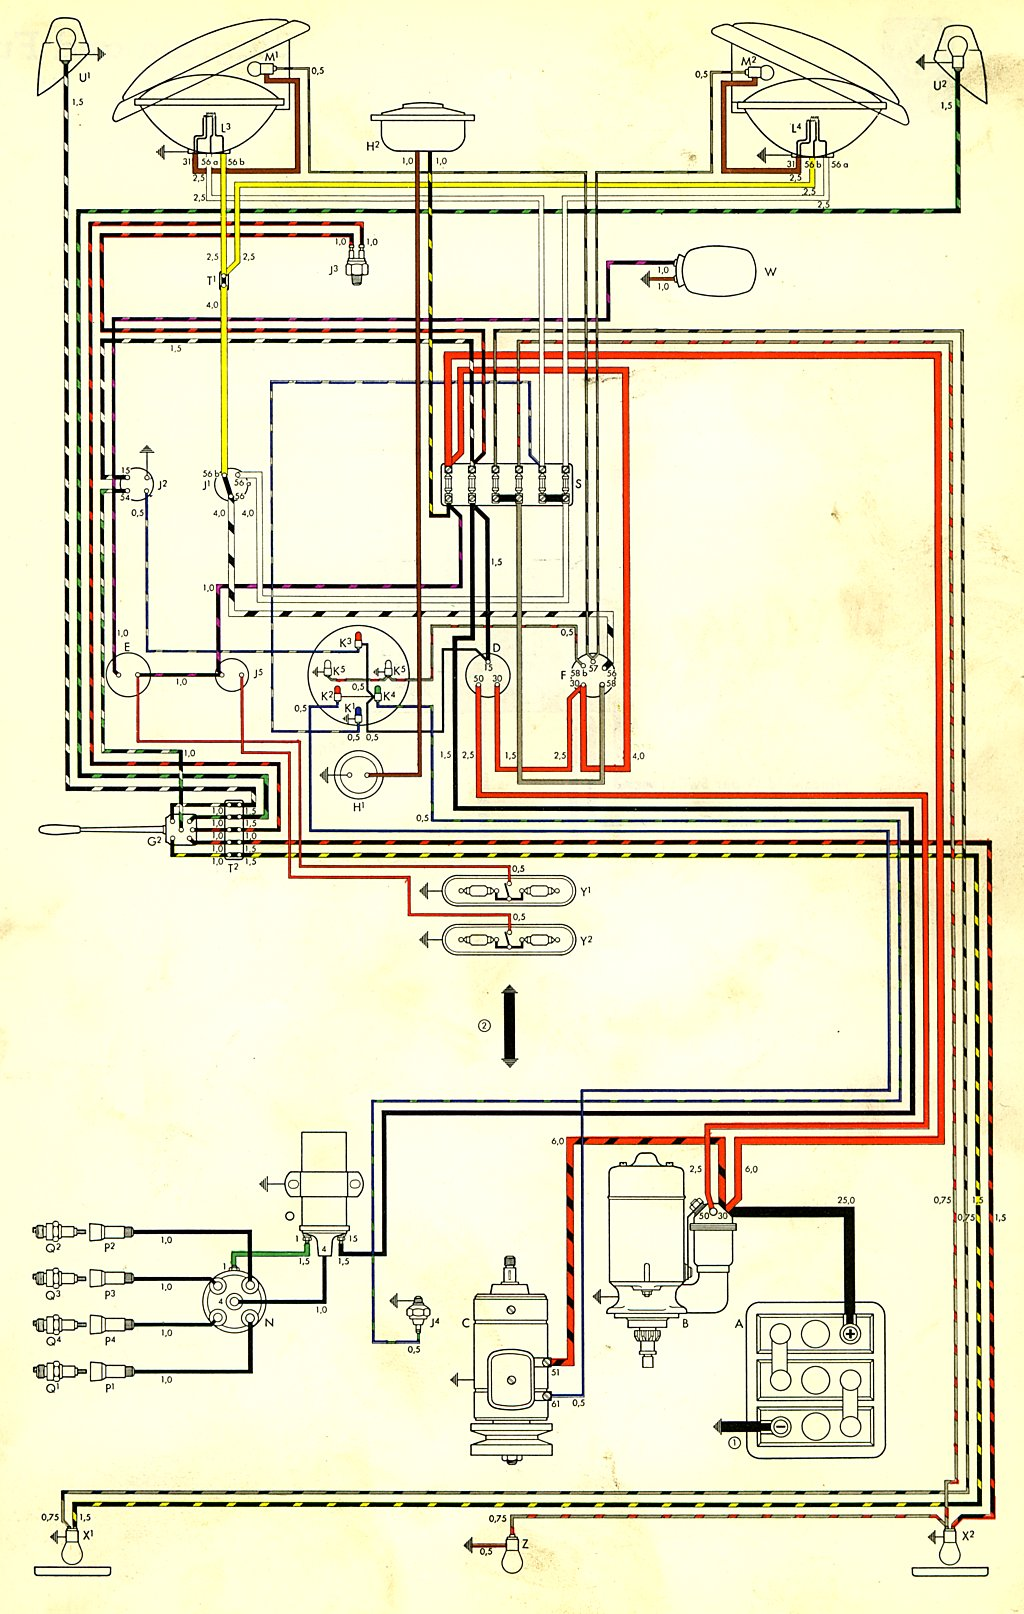 1959 Beetle Wiring Diagram Opinions About Wiring Diagram \u2022 1973 Volkswagen  Beetle Wiring Diagram Vw Beetle Wiring Diagram 1972 Dah